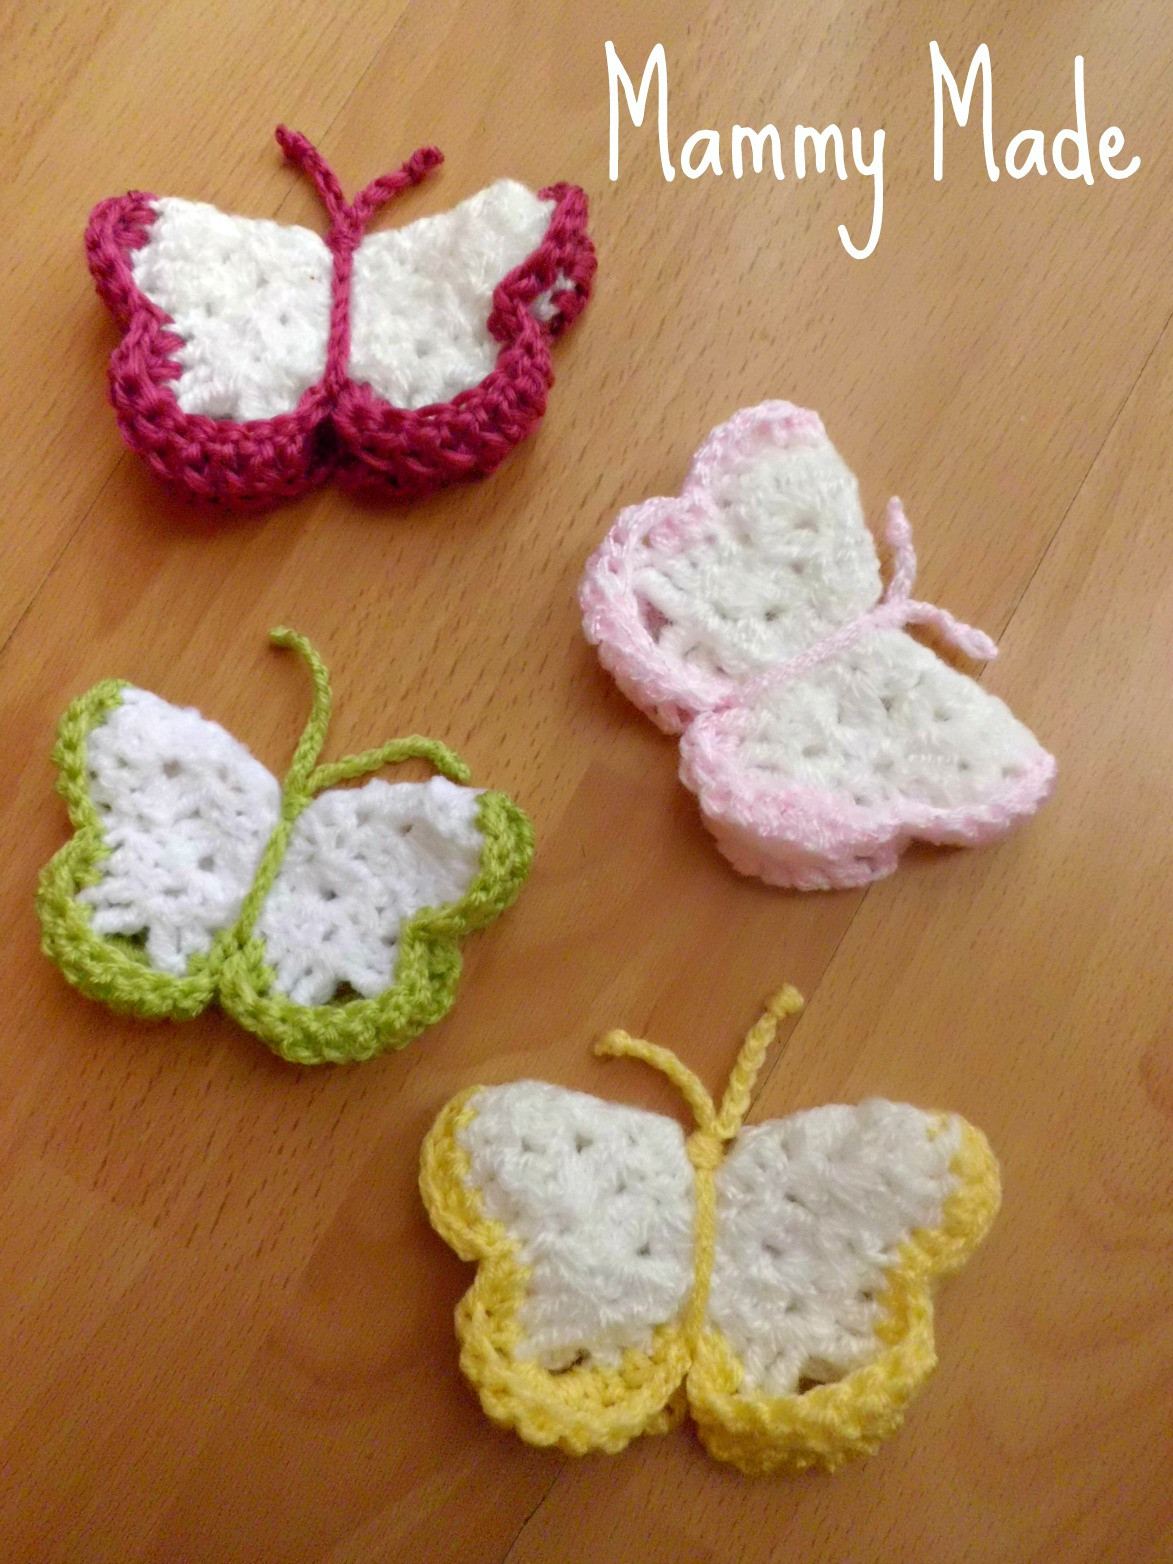 Mammy Made Crochet 3D Butterfly